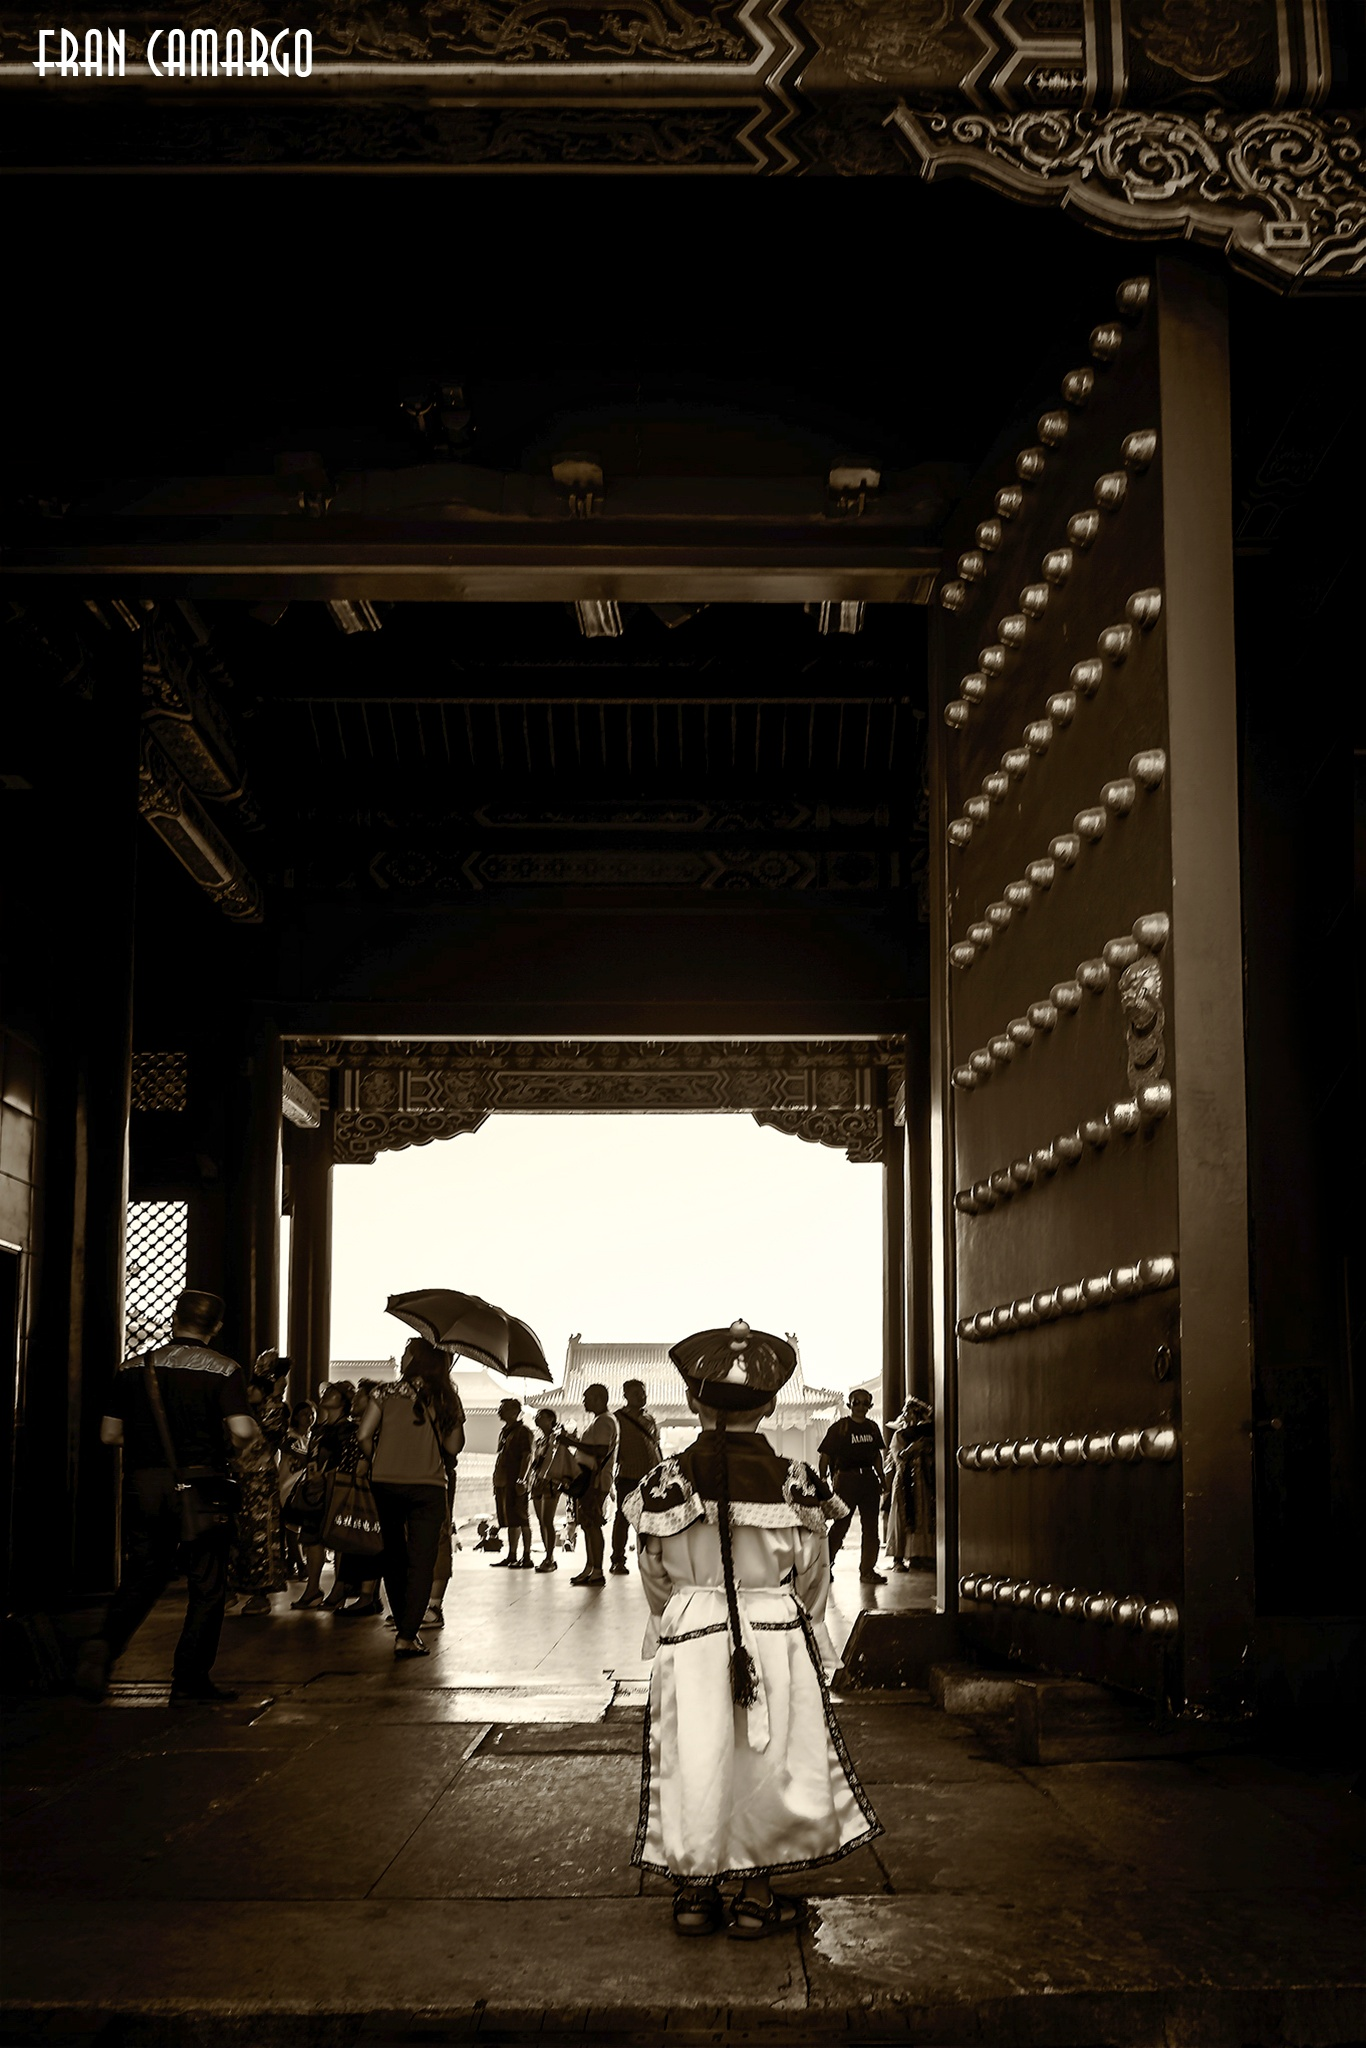 Forbidden City Beijing by Fran Camargo